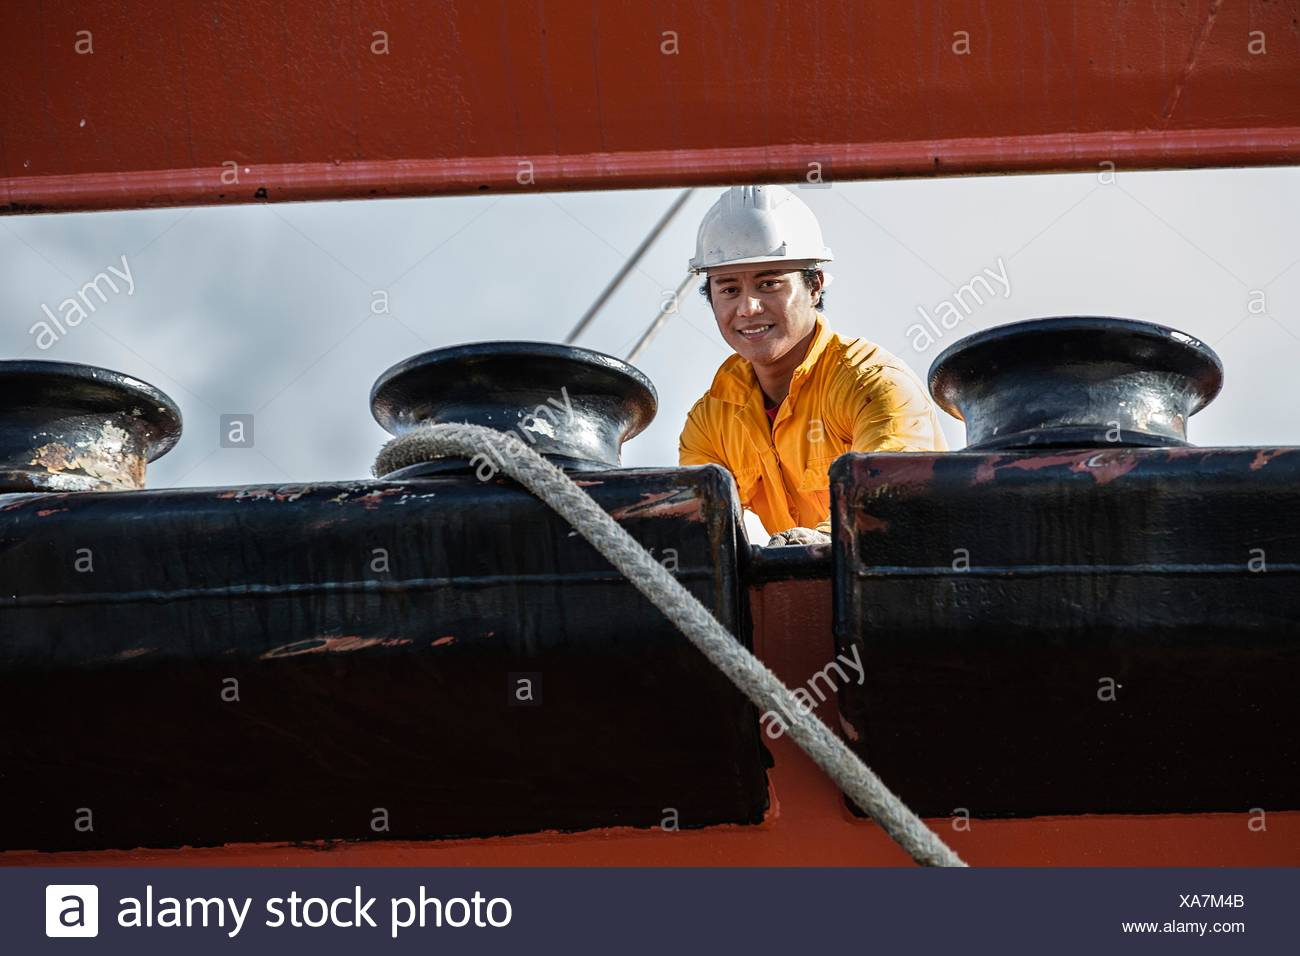 Worker fastening ropes to mooring posts on oil tanker - Stock Image